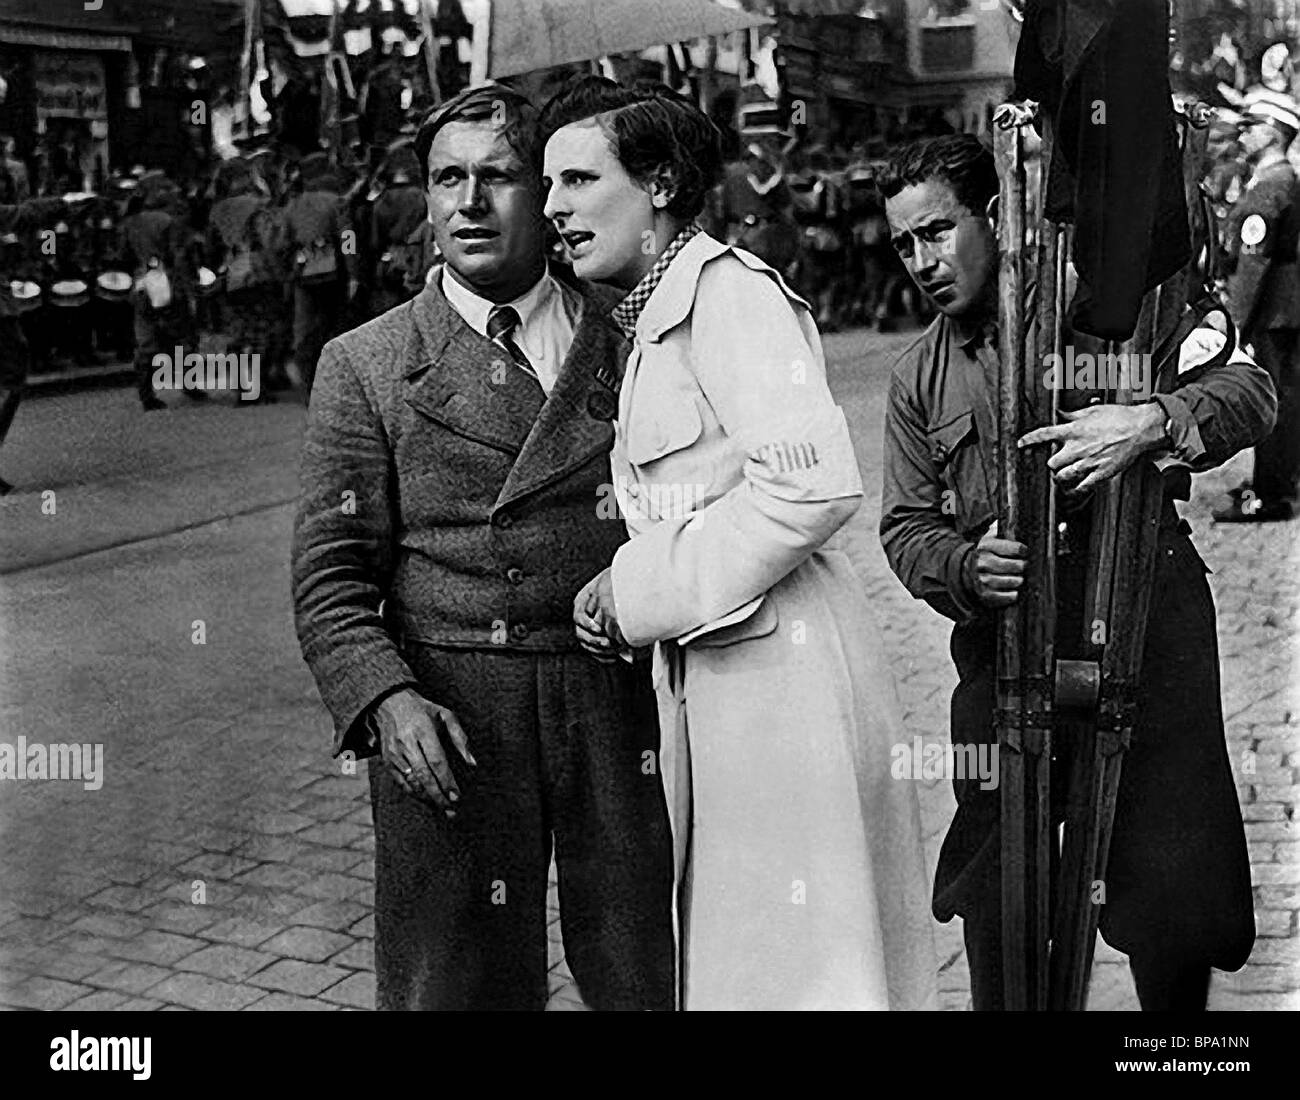 an analysis of leni riefenstahl Better time to reexamine the life and work of leni riefenstahl than the present we are now as far documentary film the wonderful, horrible life of leni riefenstahl, she says of goebbels, i can almost follows, i offer a detailed analysis of triumph of the wi/'s opening sequence begin by looking, first,.